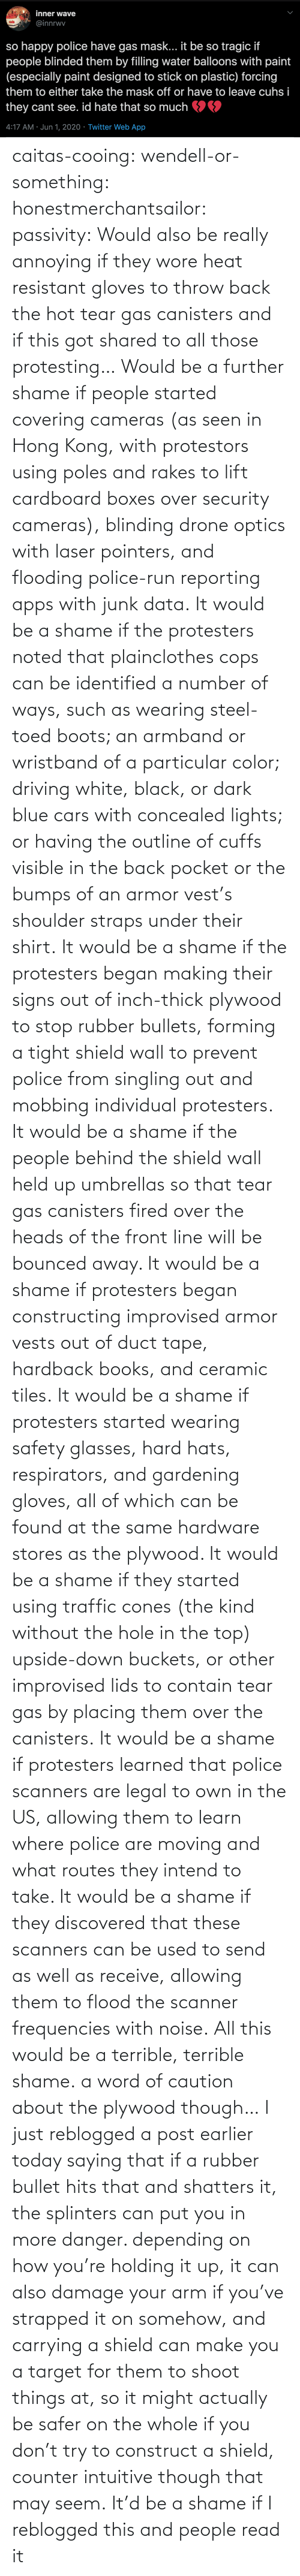 Kind: caitas-cooing:  wendell-or-something: honestmerchantsailor:  passivity: Would also be really annoying if they wore heat resistant gloves to throw back the hot tear gas canisters and if this got shared to all those protesting… Would be a further shame if people started covering cameras (as seen in Hong Kong, with protestors using poles and rakes to lift cardboard boxes over security cameras), blinding drone optics with laser pointers, and flooding police-run reporting apps with junk data. It would be a shame if the protesters noted that plainclothes cops can be identified a number of ways, such as wearing steel-toed boots; an armband or wristband of a particular color; driving white, black, or dark blue cars with concealed lights; or having the outline of cuffs visible in the back pocket or the bumps of an armor vest's shoulder straps under their shirt. It would be a shame if the protesters began making their signs out of inch-thick plywood to stop rubber bullets, forming a tight shield wall to prevent police from singling out and mobbing individual protesters. It would be a shame if the people behind the shield wall held up umbrellas so that tear gas canisters fired over the heads of the front line will be bounced away. It would be a shame if protesters began constructing improvised armor vests out of duct tape, hardback books, and ceramic tiles. It would be a shame if protesters started wearing safety glasses, hard hats, respirators, and gardening gloves, all of which can be found at the same hardware stores as the plywood. It would be a shame if they started using traffic cones (the kind without the hole in the top) upside-down buckets, or other improvised lids to contain tear gas by placing them over the canisters. It would be a shame if protesters learned that police scanners are legal to own in the US, allowing them to learn where police are moving and what routes they intend to take. It would be a shame if they discovered that these scanners can be used to send as well as receive, allowing them to flood the scanner frequencies with noise. All this would be a terrible, terrible shame.    a word of caution about the plywood though… I just reblogged a post earlier today saying that if a rubber bullet hits that and shatters it, the splinters can put you in more danger. depending on how you're holding it up, it can also damage your arm if you've strapped it on somehow, and carrying a shield can make you a target for them to shoot things at, so it might actually be safer on the whole if you don't try to construct a shield, counter intuitive though that may seem.    It'd be a shame if I reblogged this and people read it